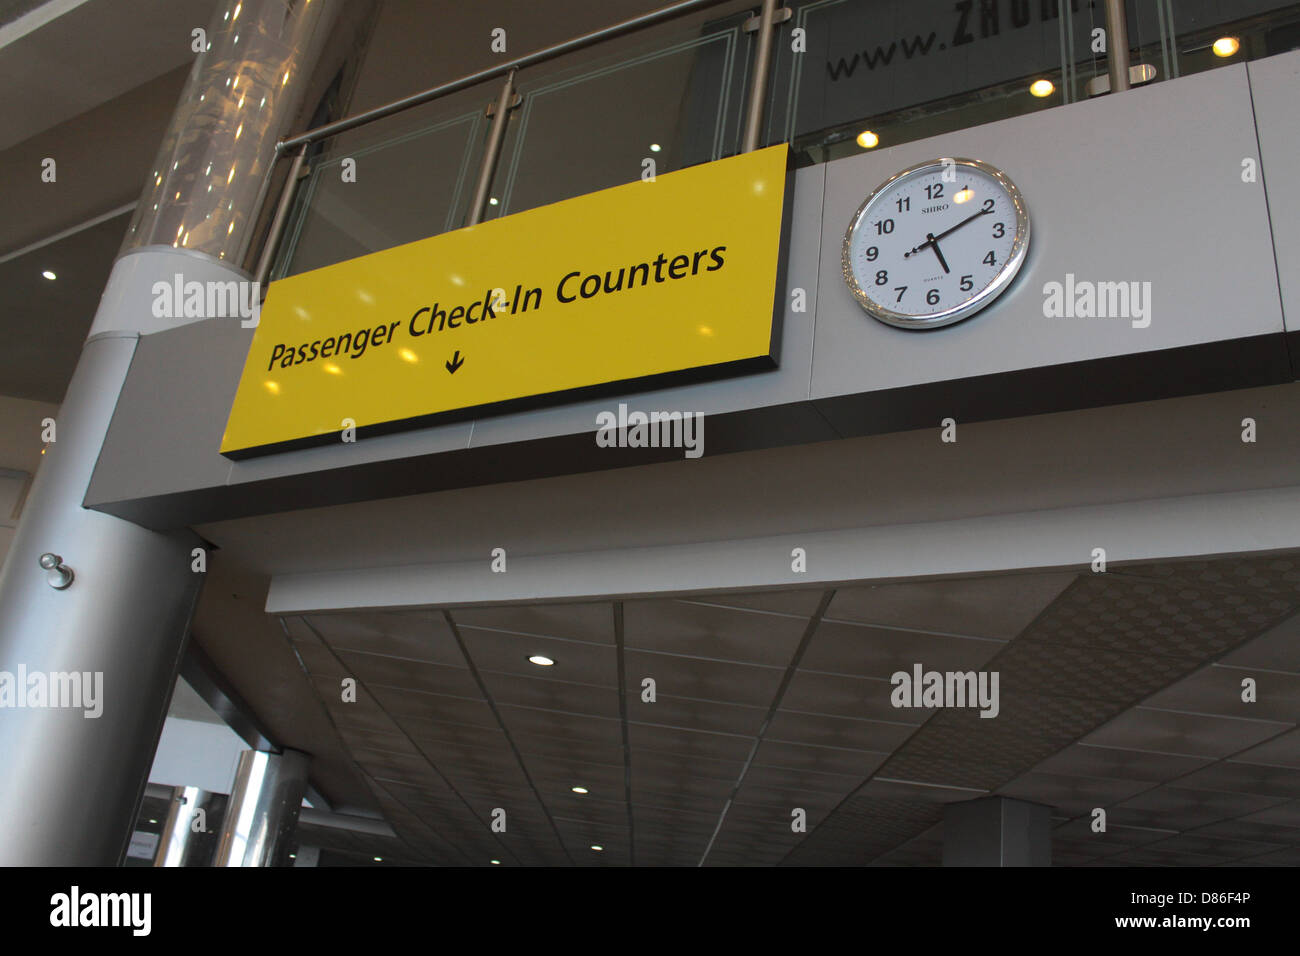 Passenger Check-in Counter point at Lagos Airport. - Stock Image